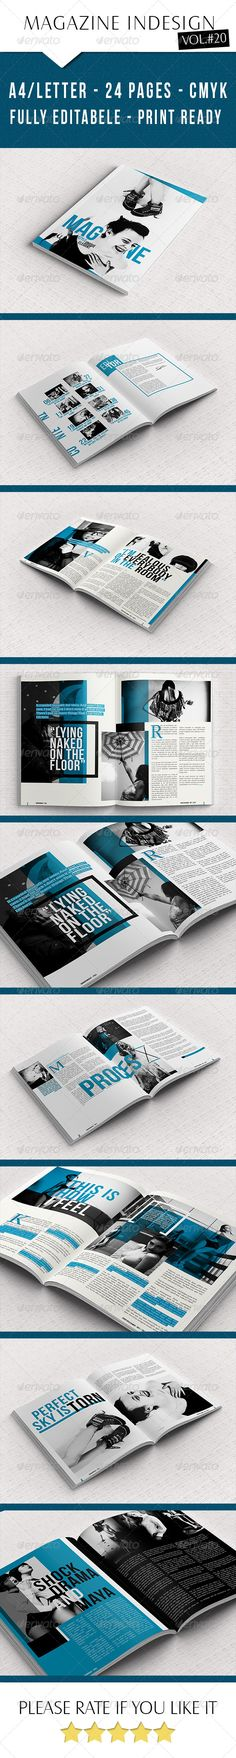 Creative Magazine Template — InDesign INDD #layout #indesign template • Available here → https://graphicriver.net/item/creative-magazine-template/7641542?ref=pxcr